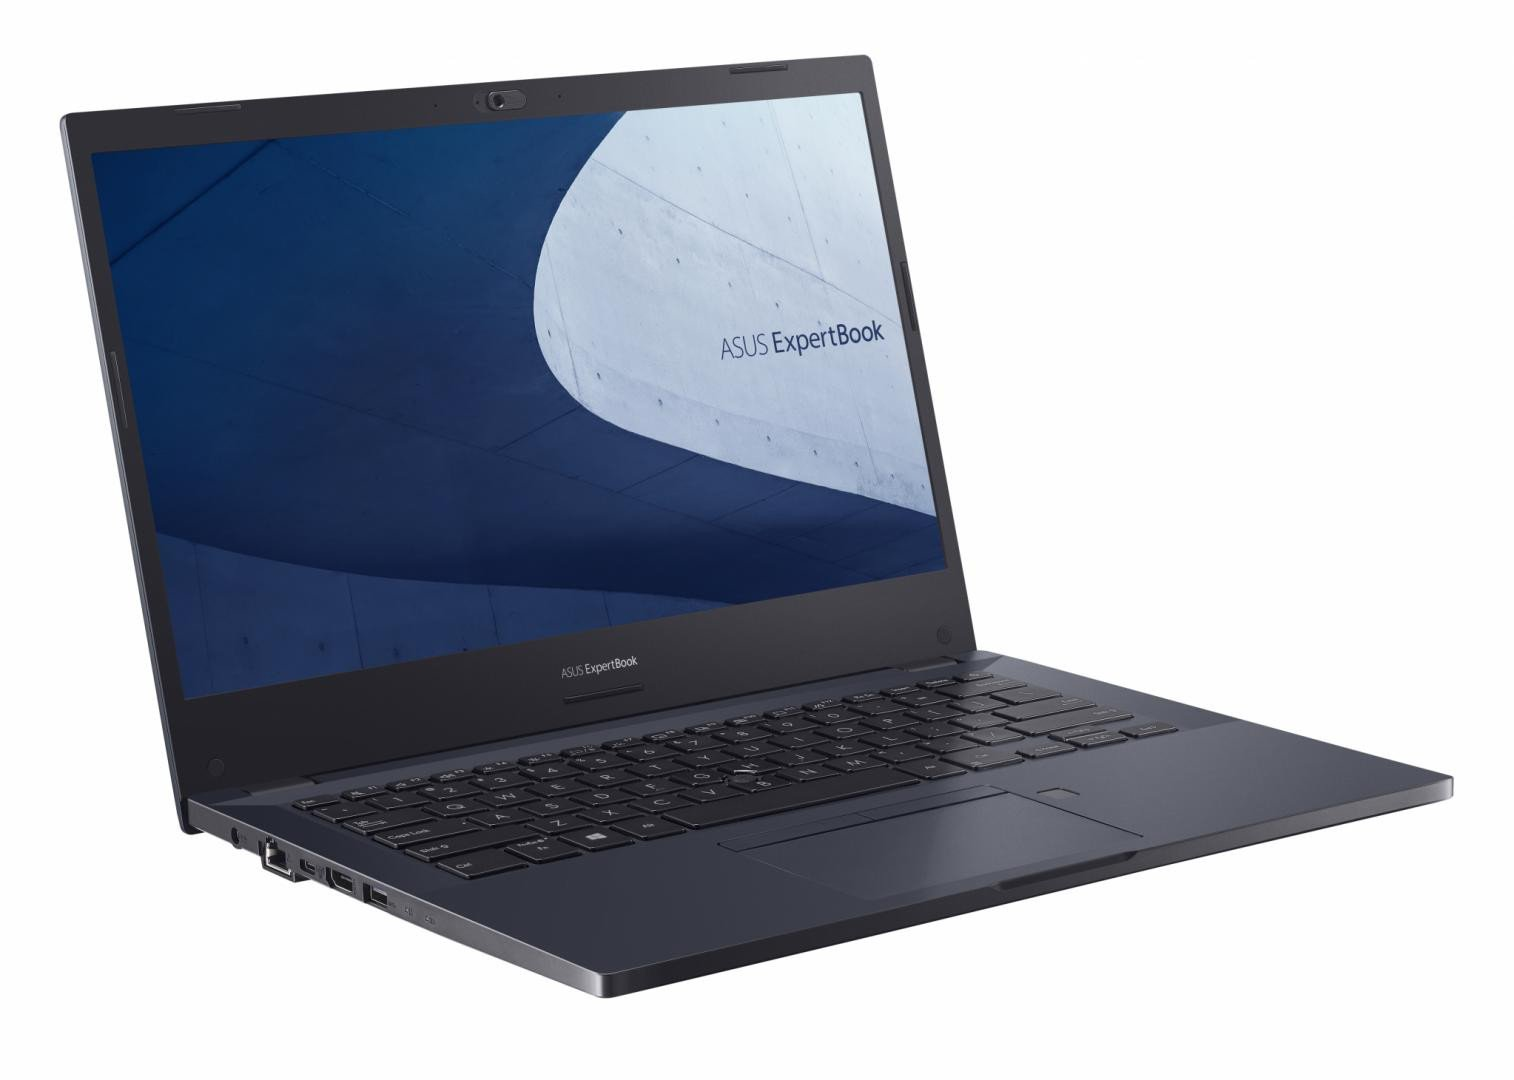 Laptop Business ASUS ExpertBook P2451FA-EB1385R, 14.0-inch, FHD (1920 x 1080) 16:9, LCD, Anti-glare display, IPS-levelPanel, Intel® Core™ i5- 10210U Processor 1.6 GHz (6M Cache, up to 4.2 GHz, 4 cores), Intel® UHD Graphics, 8GB DDR4 SO-DIMM, 512GB M.2 NVMe™ PCIe® 3.0 SSD, Wi-Fi 5 - imaginea 1